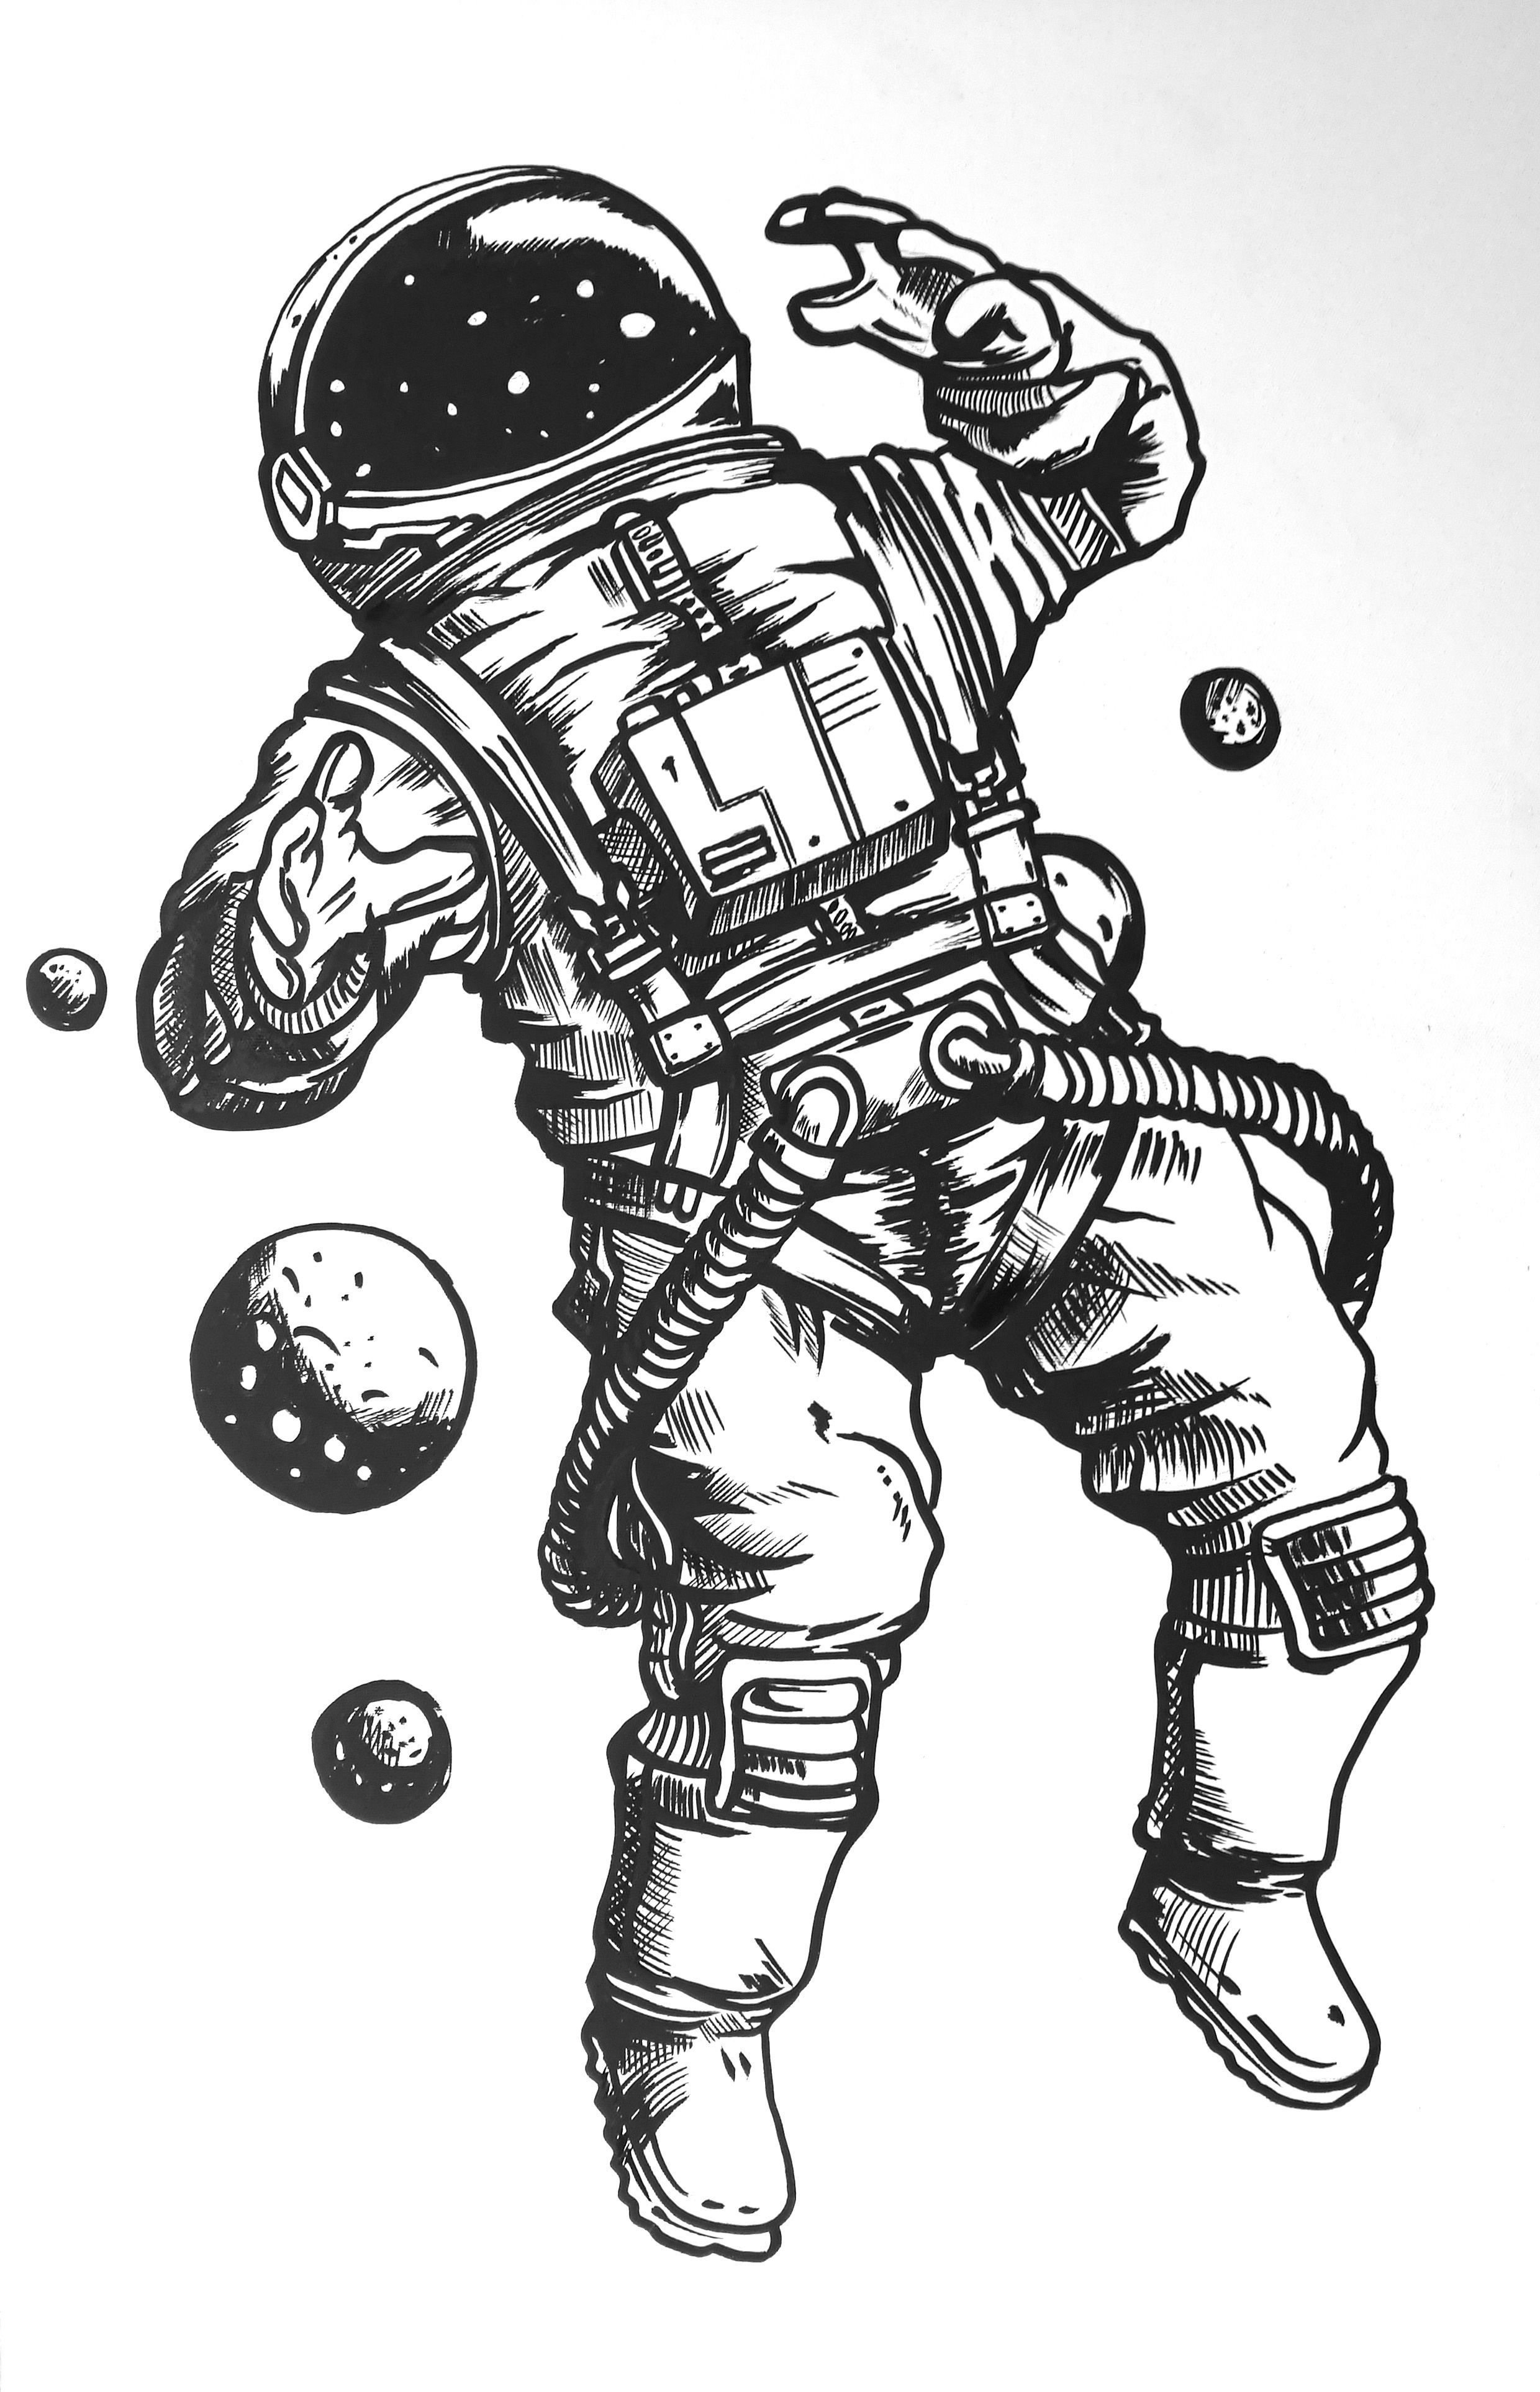 how to draw astronaut the martian sticker illustrations on ภาพวาด การออกแบบ how draw astronaut to